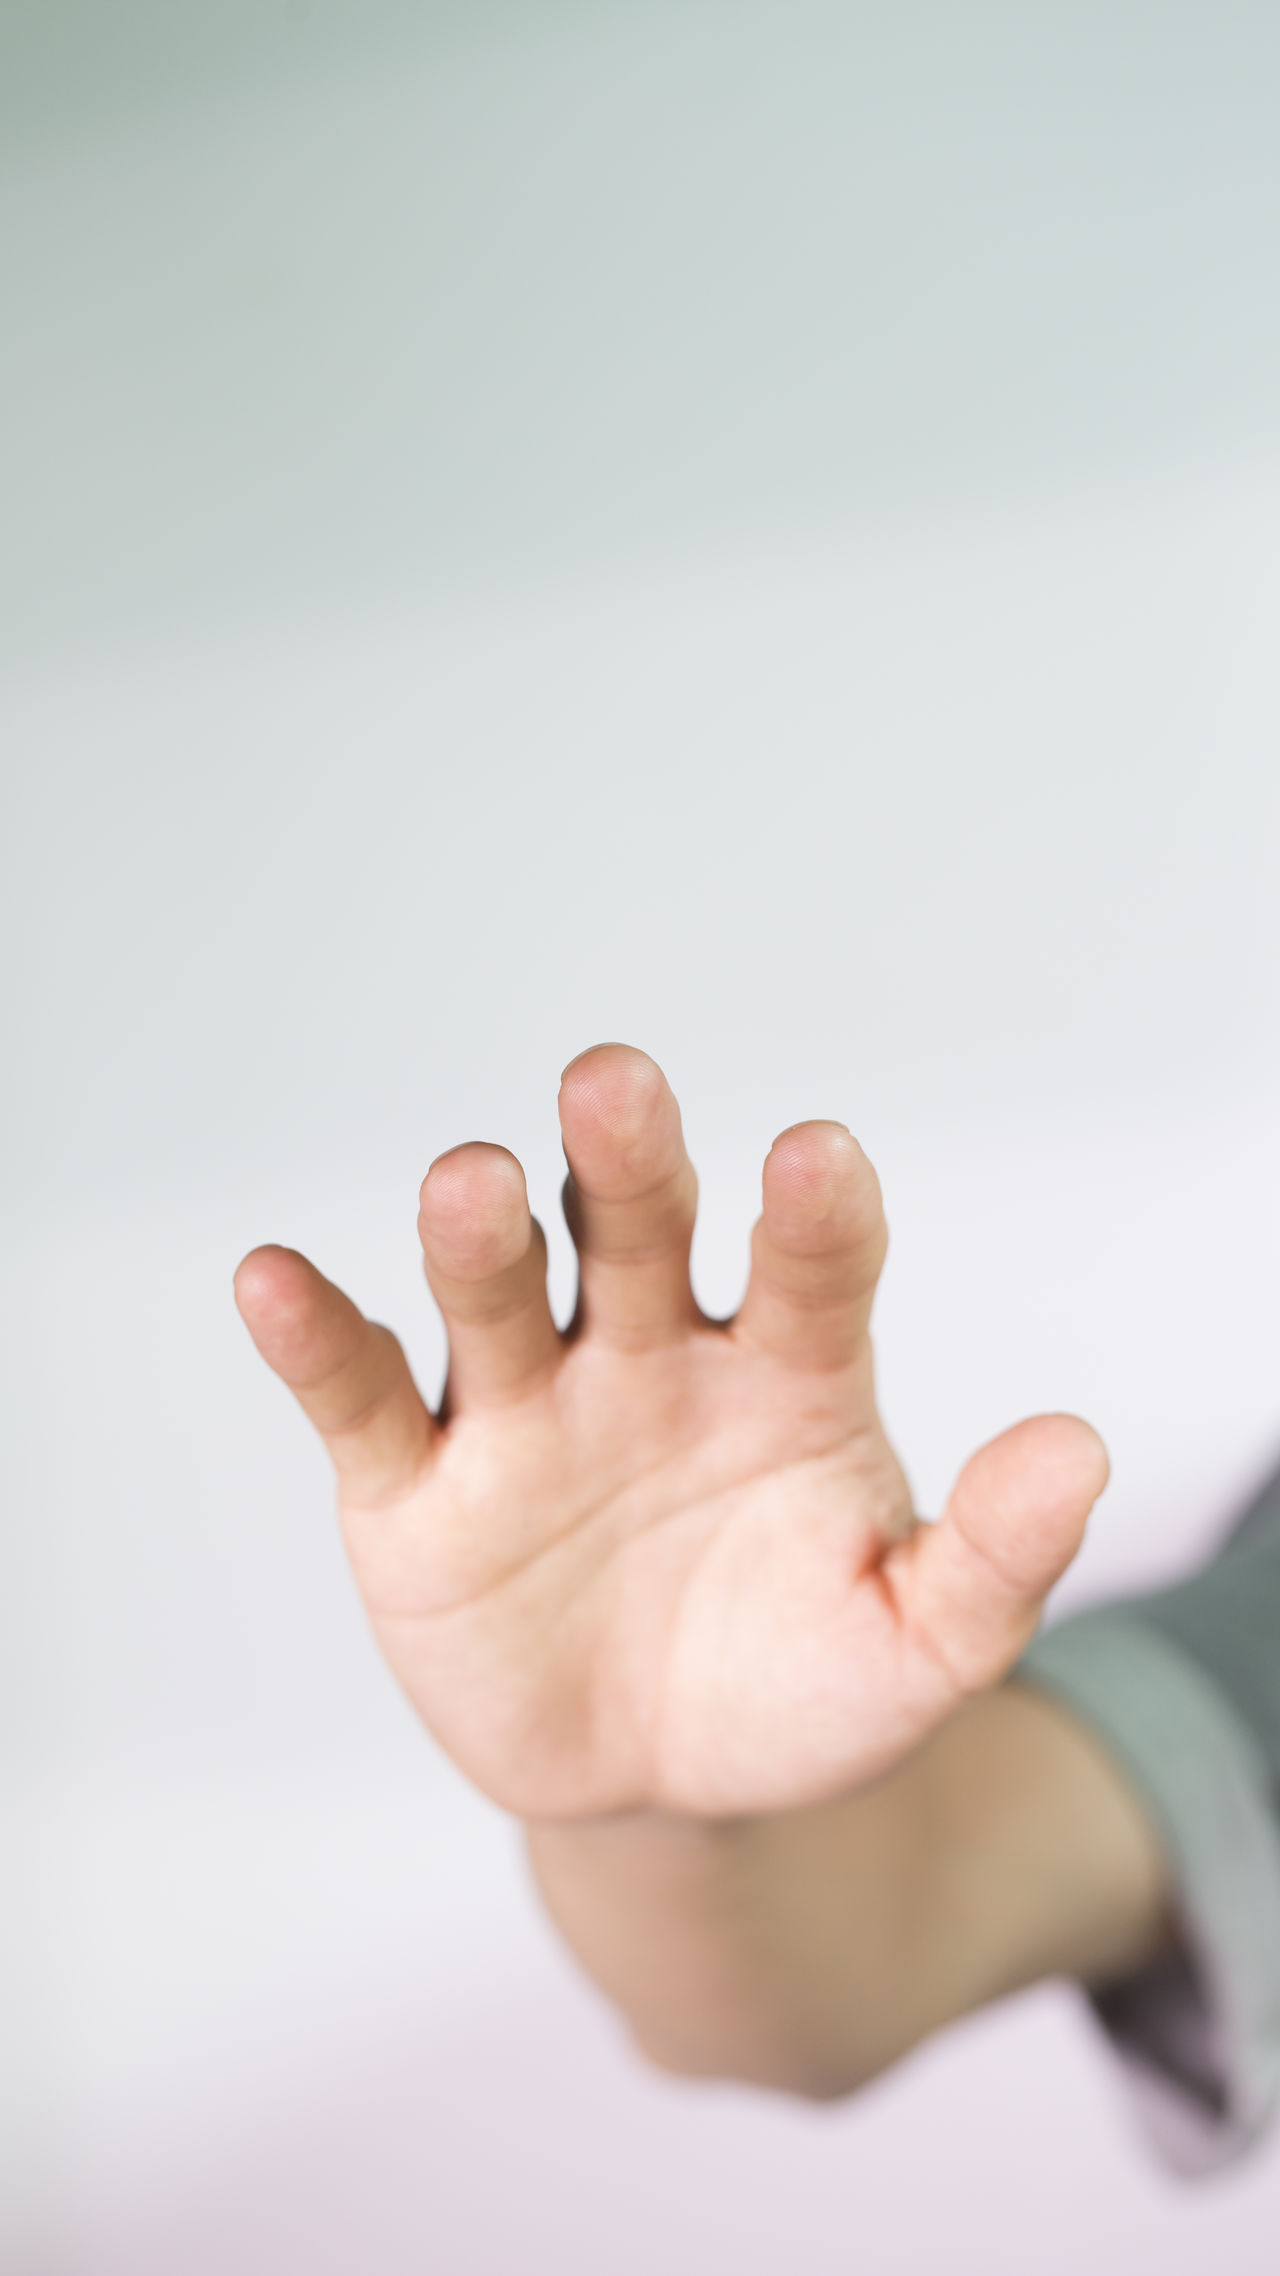 CLOSE-UP OF HUMAN HAND OVER WHITE BACKGROUND